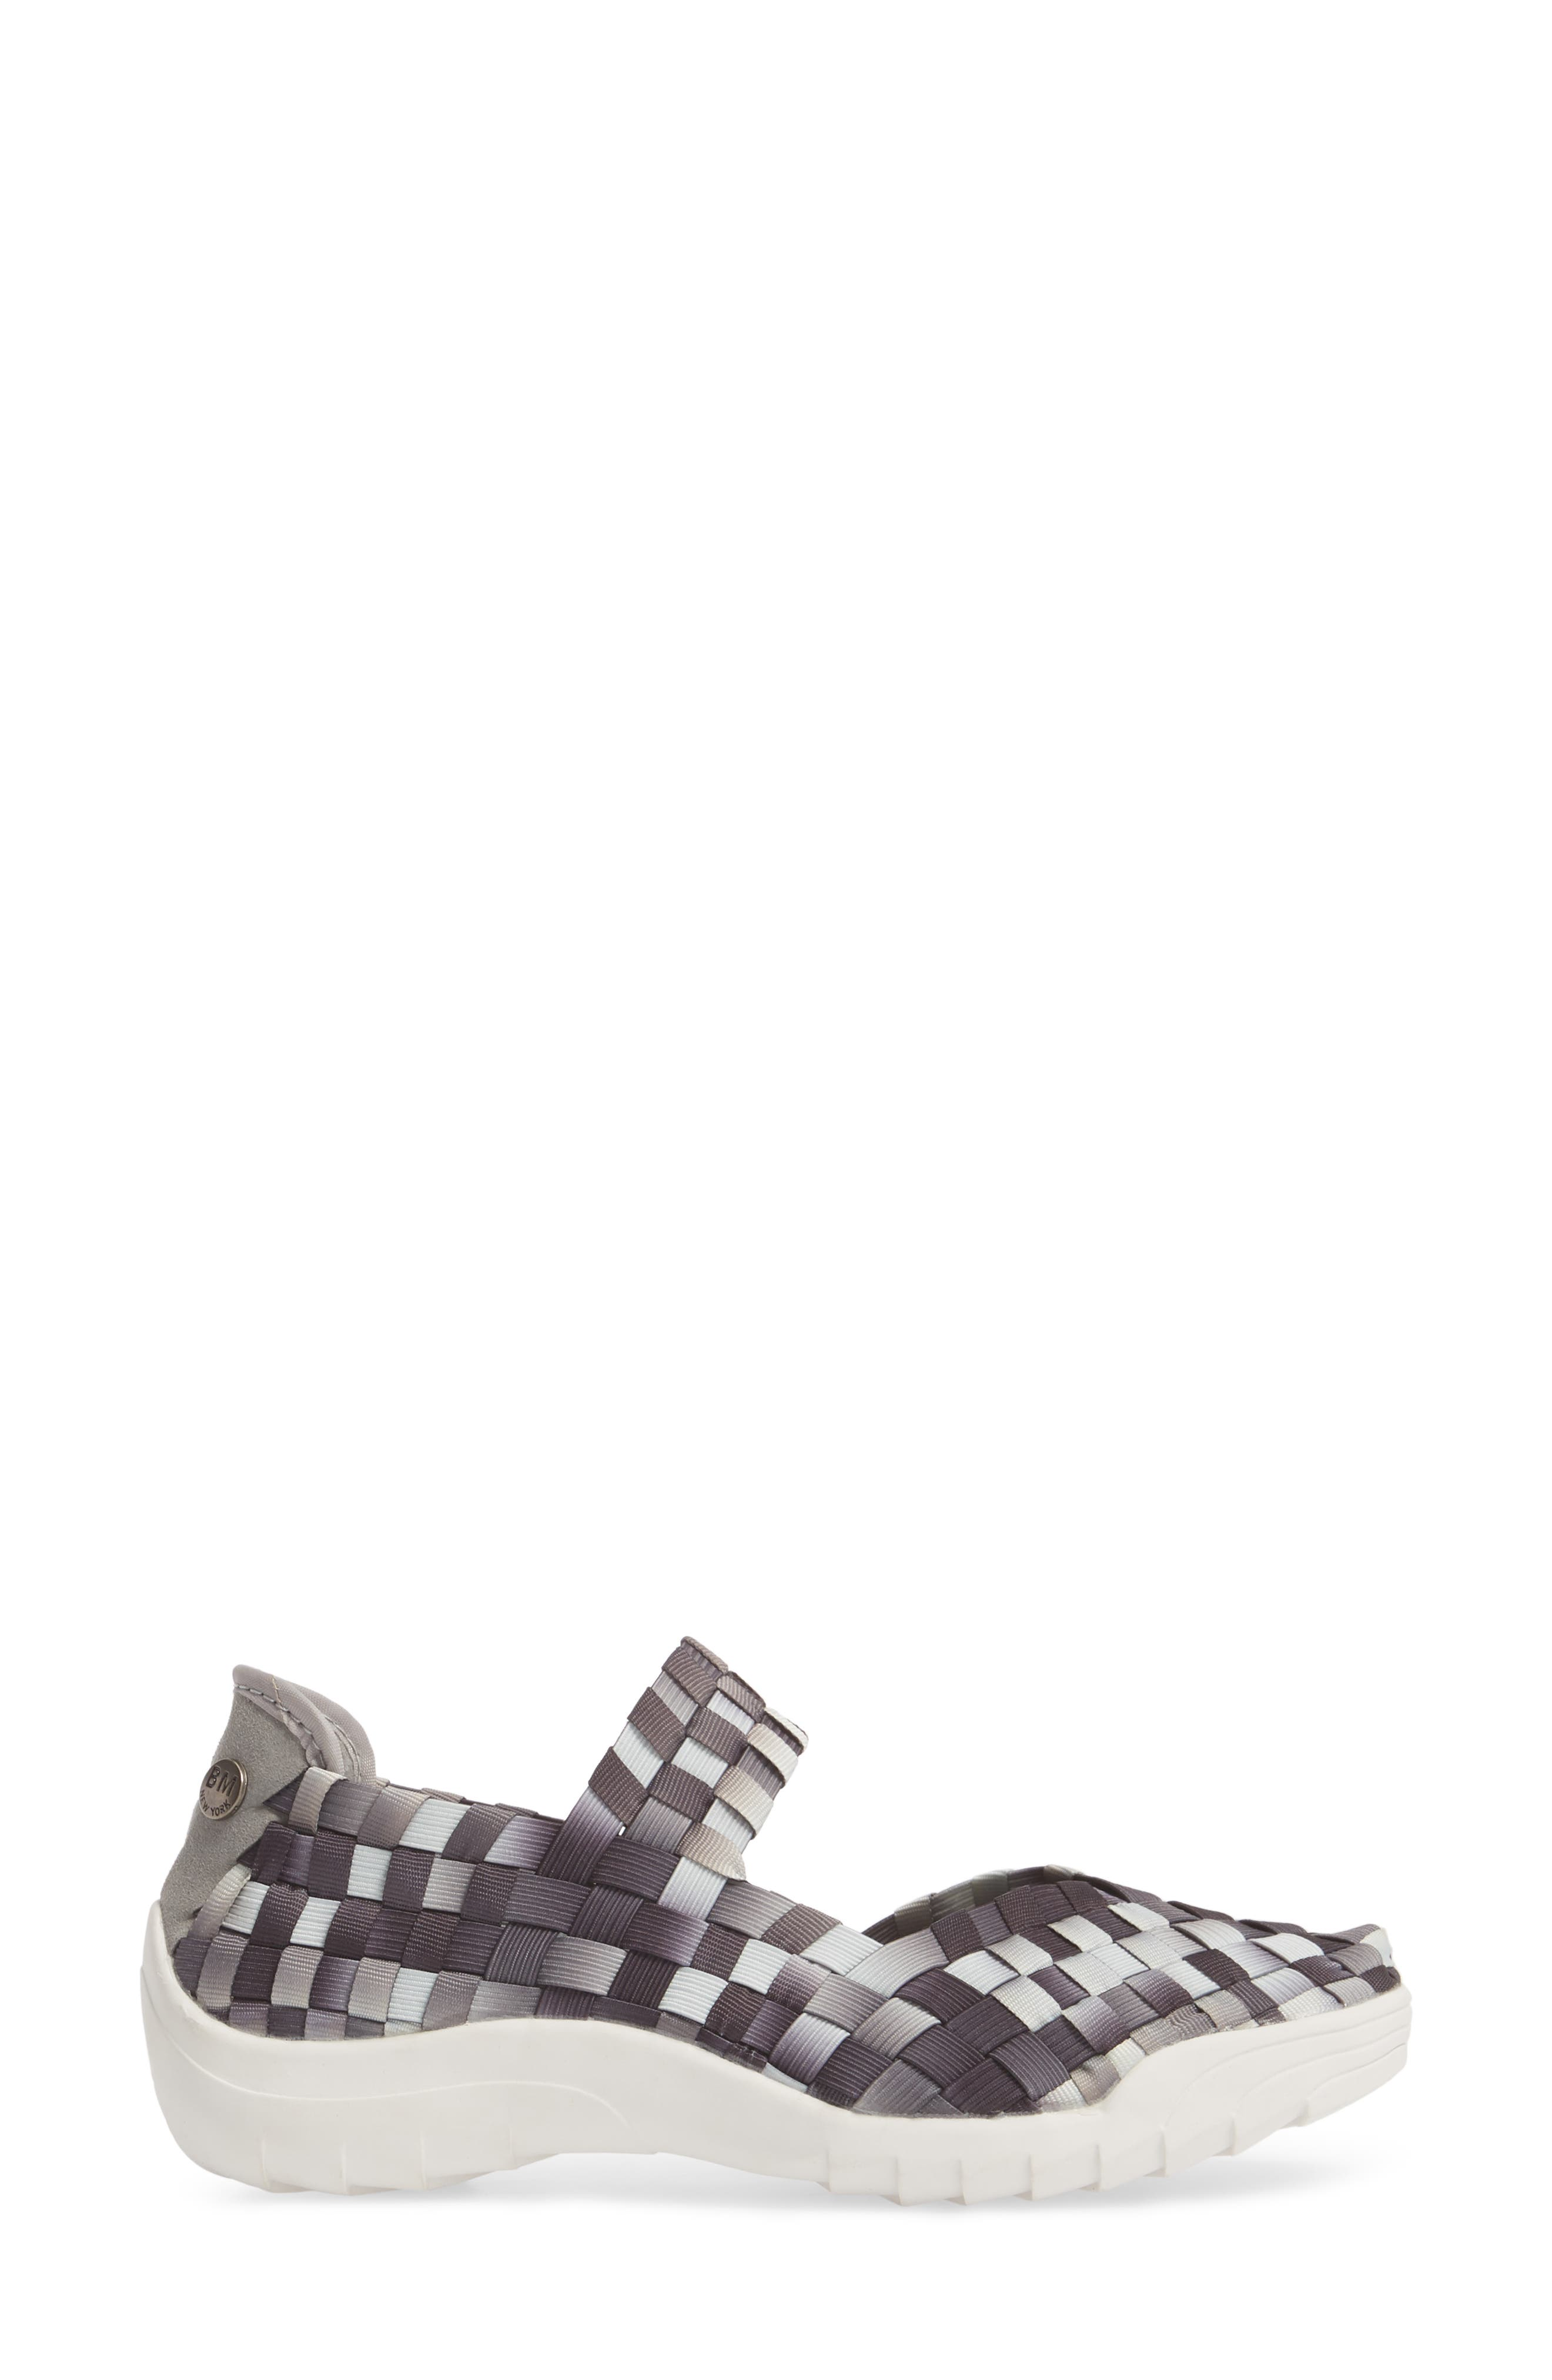 Rigged Charm Sneaker,                             Alternate thumbnail 3, color,                             GREY OMBRE